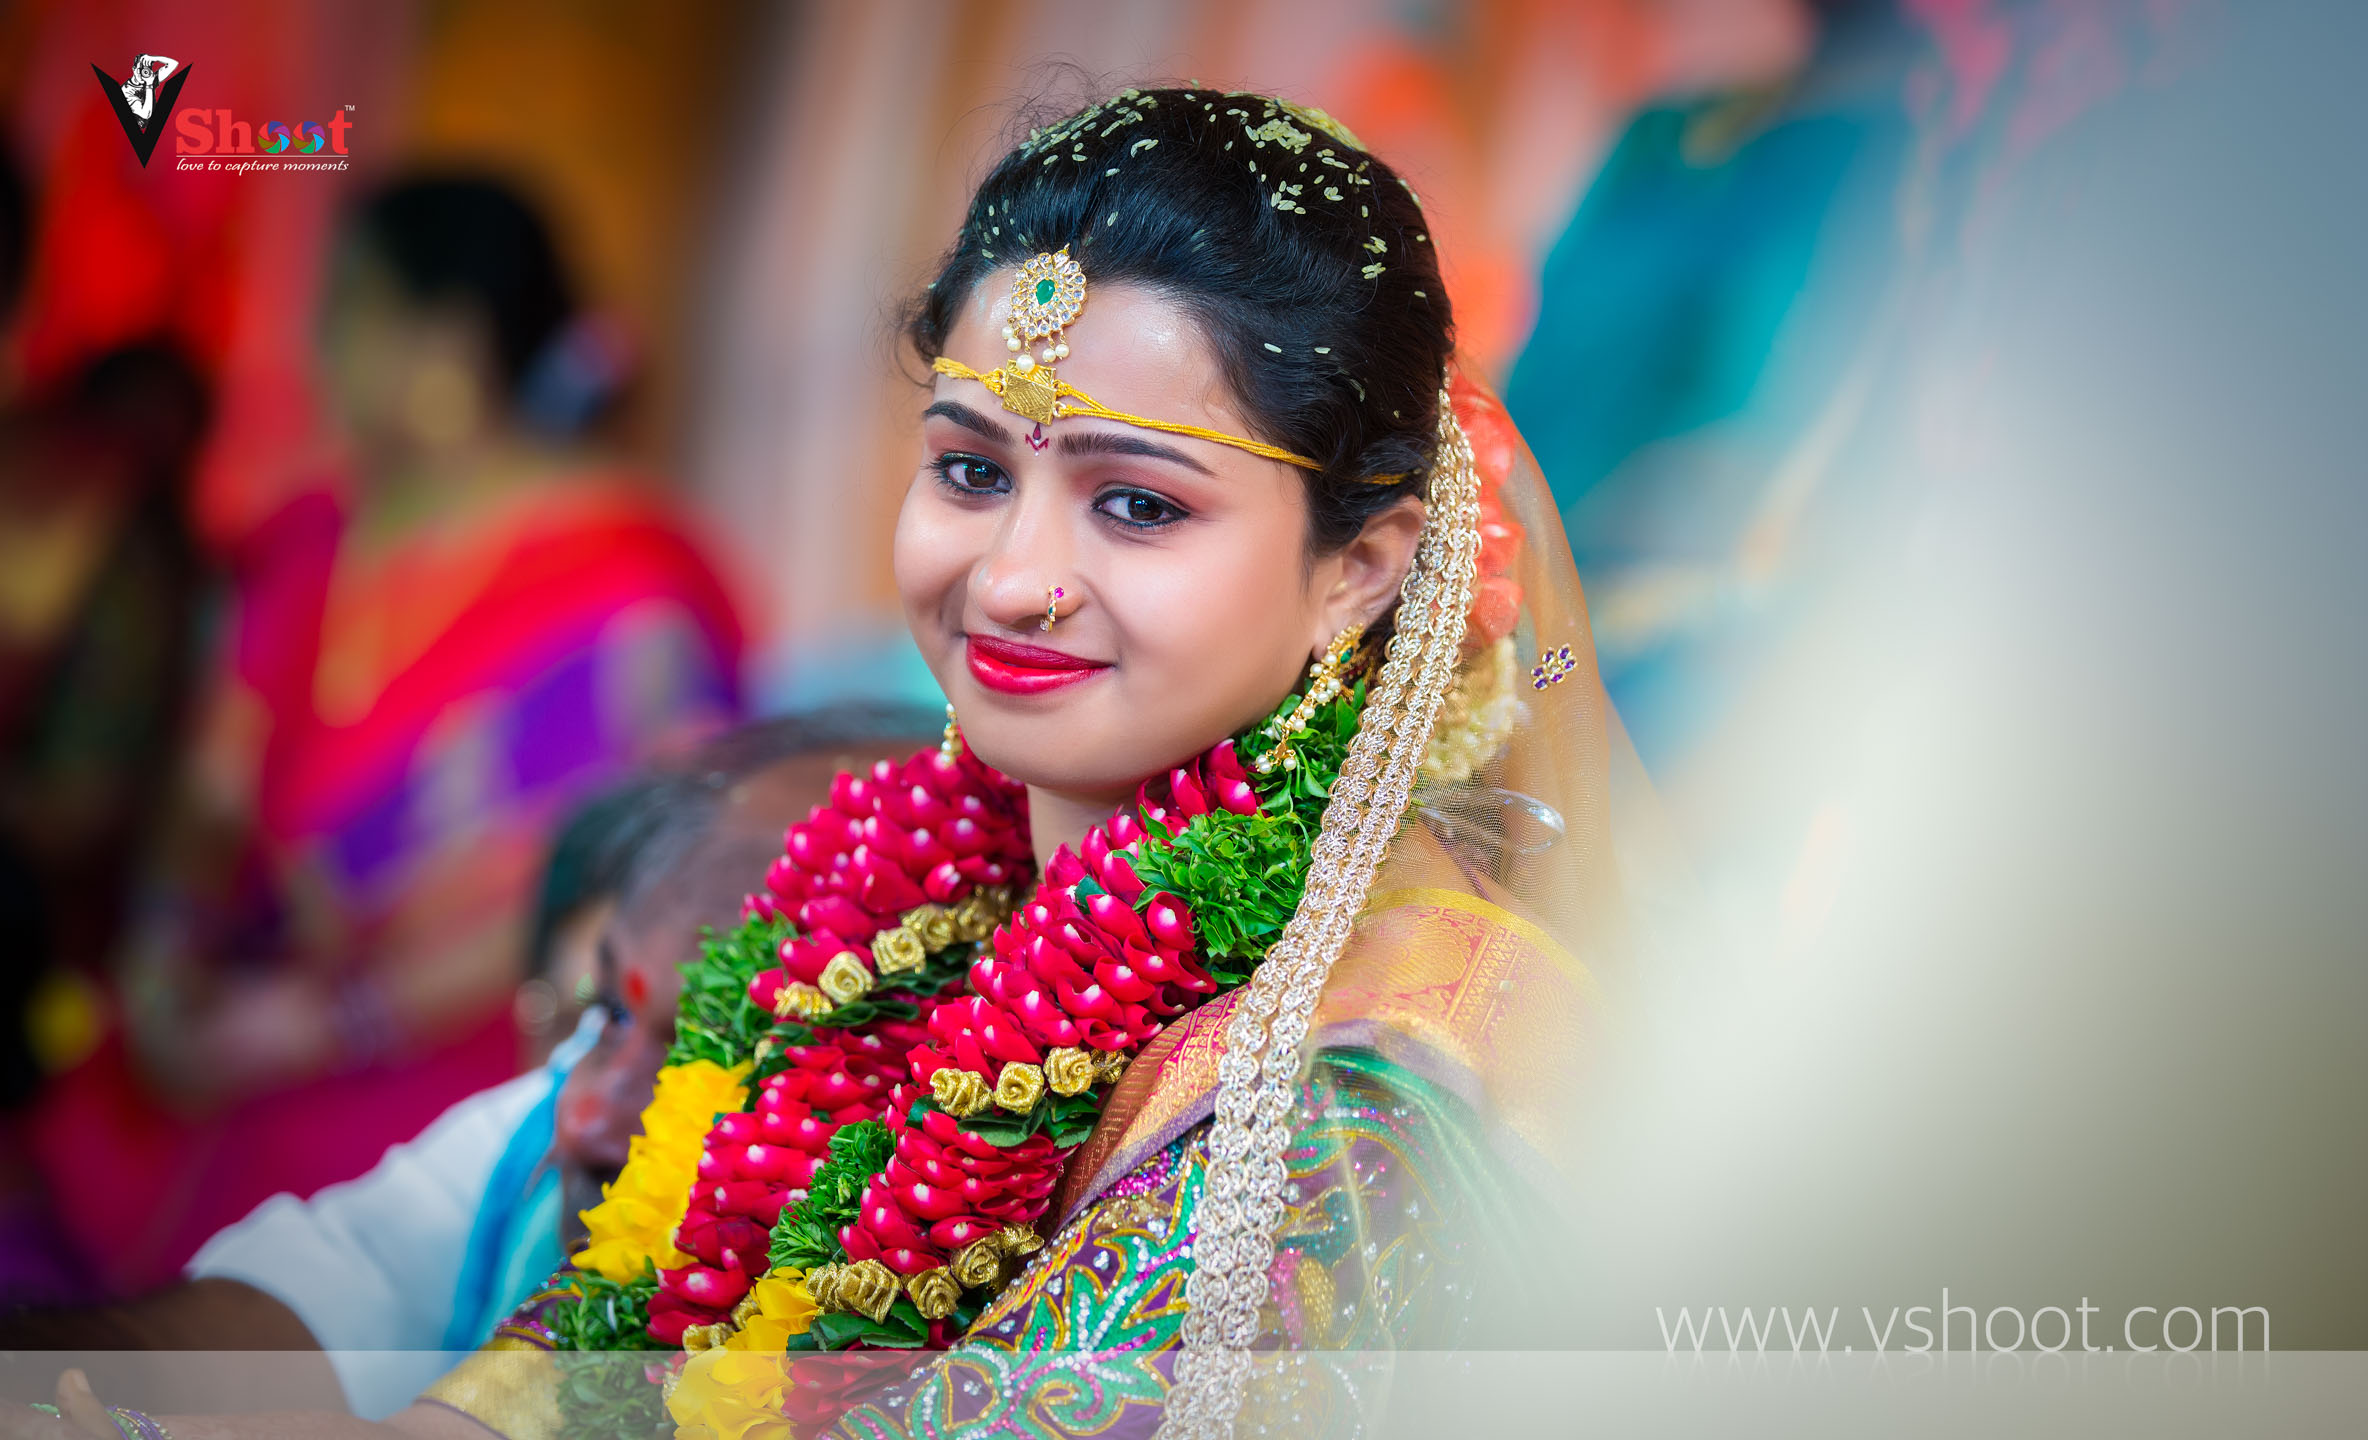 vshoot-candid-wedding-photography